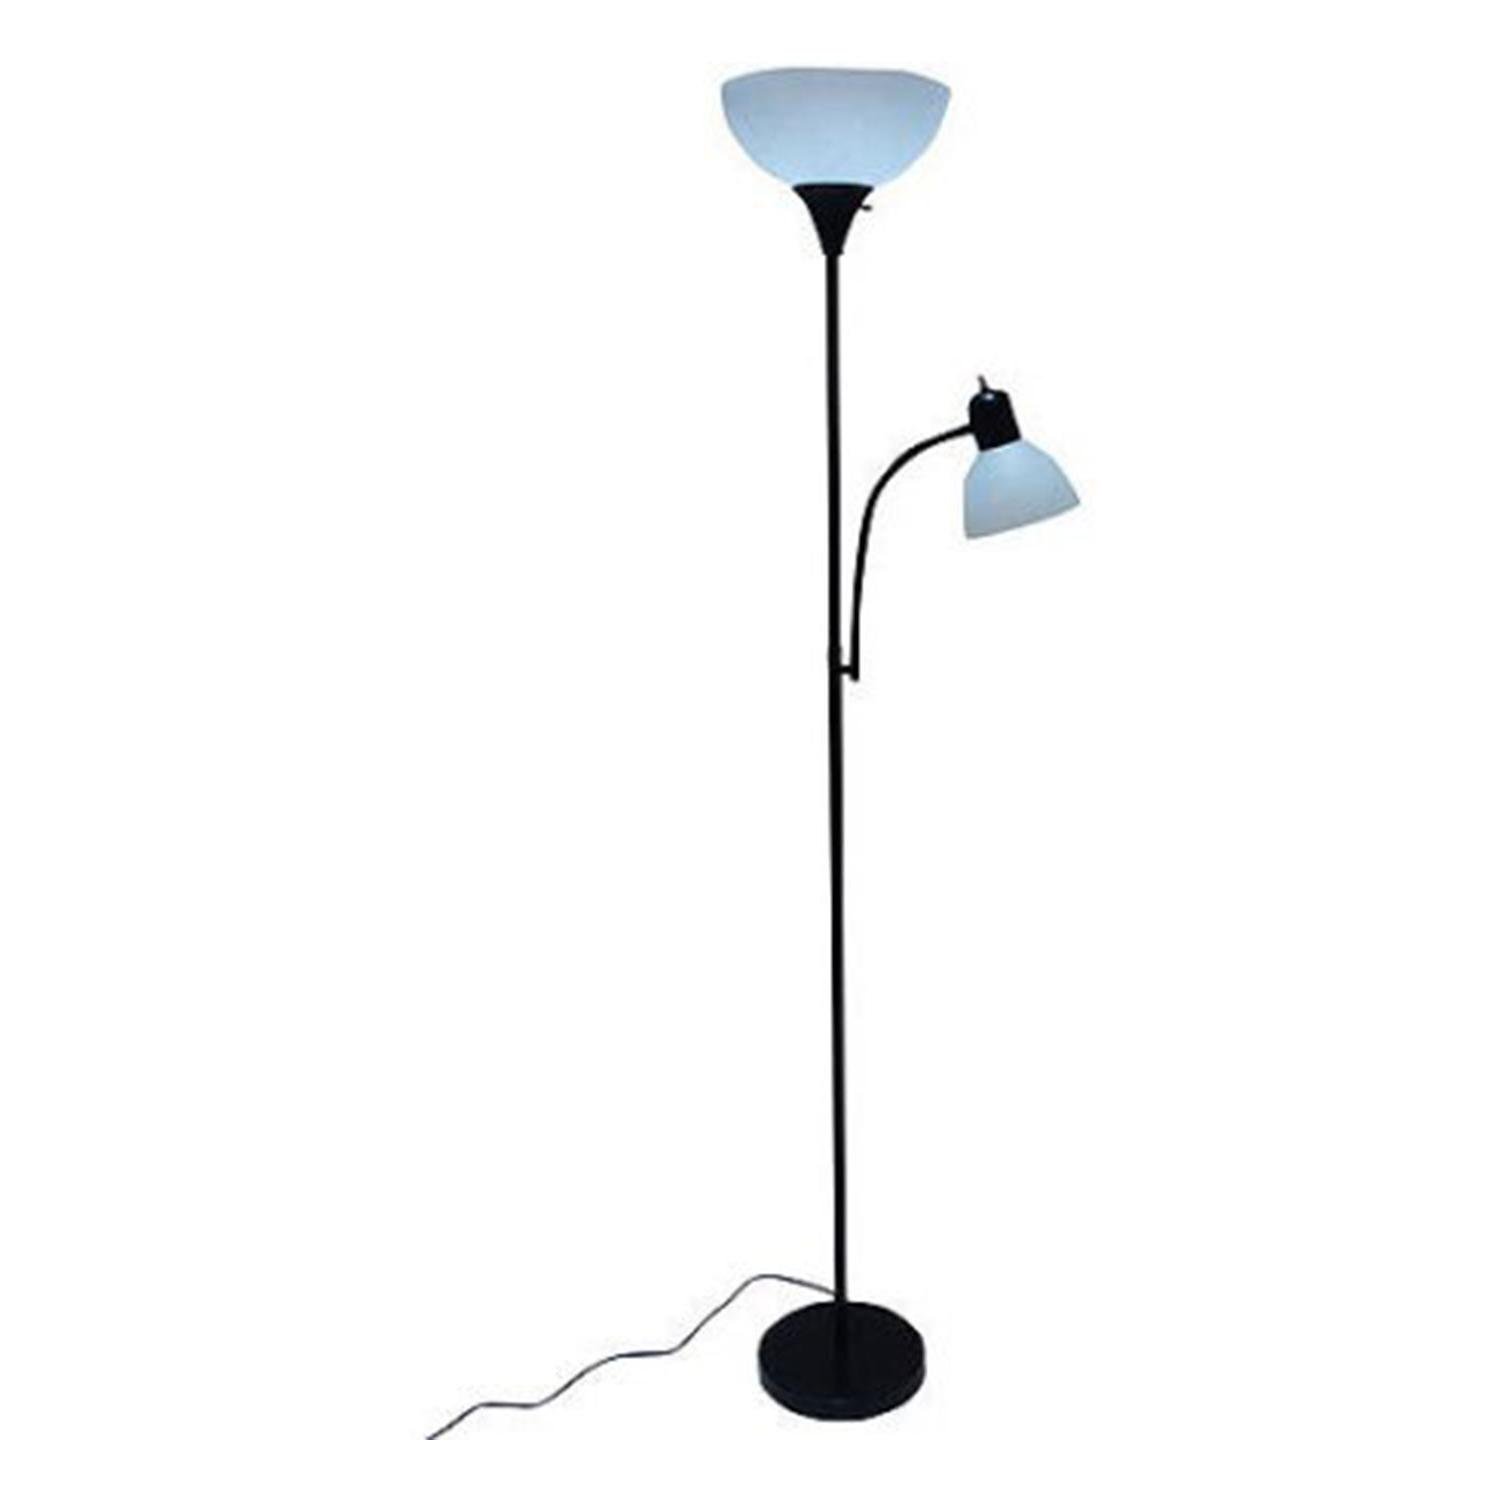 Combo Lamp 72'' Light Modern Room Decor Lighting Body